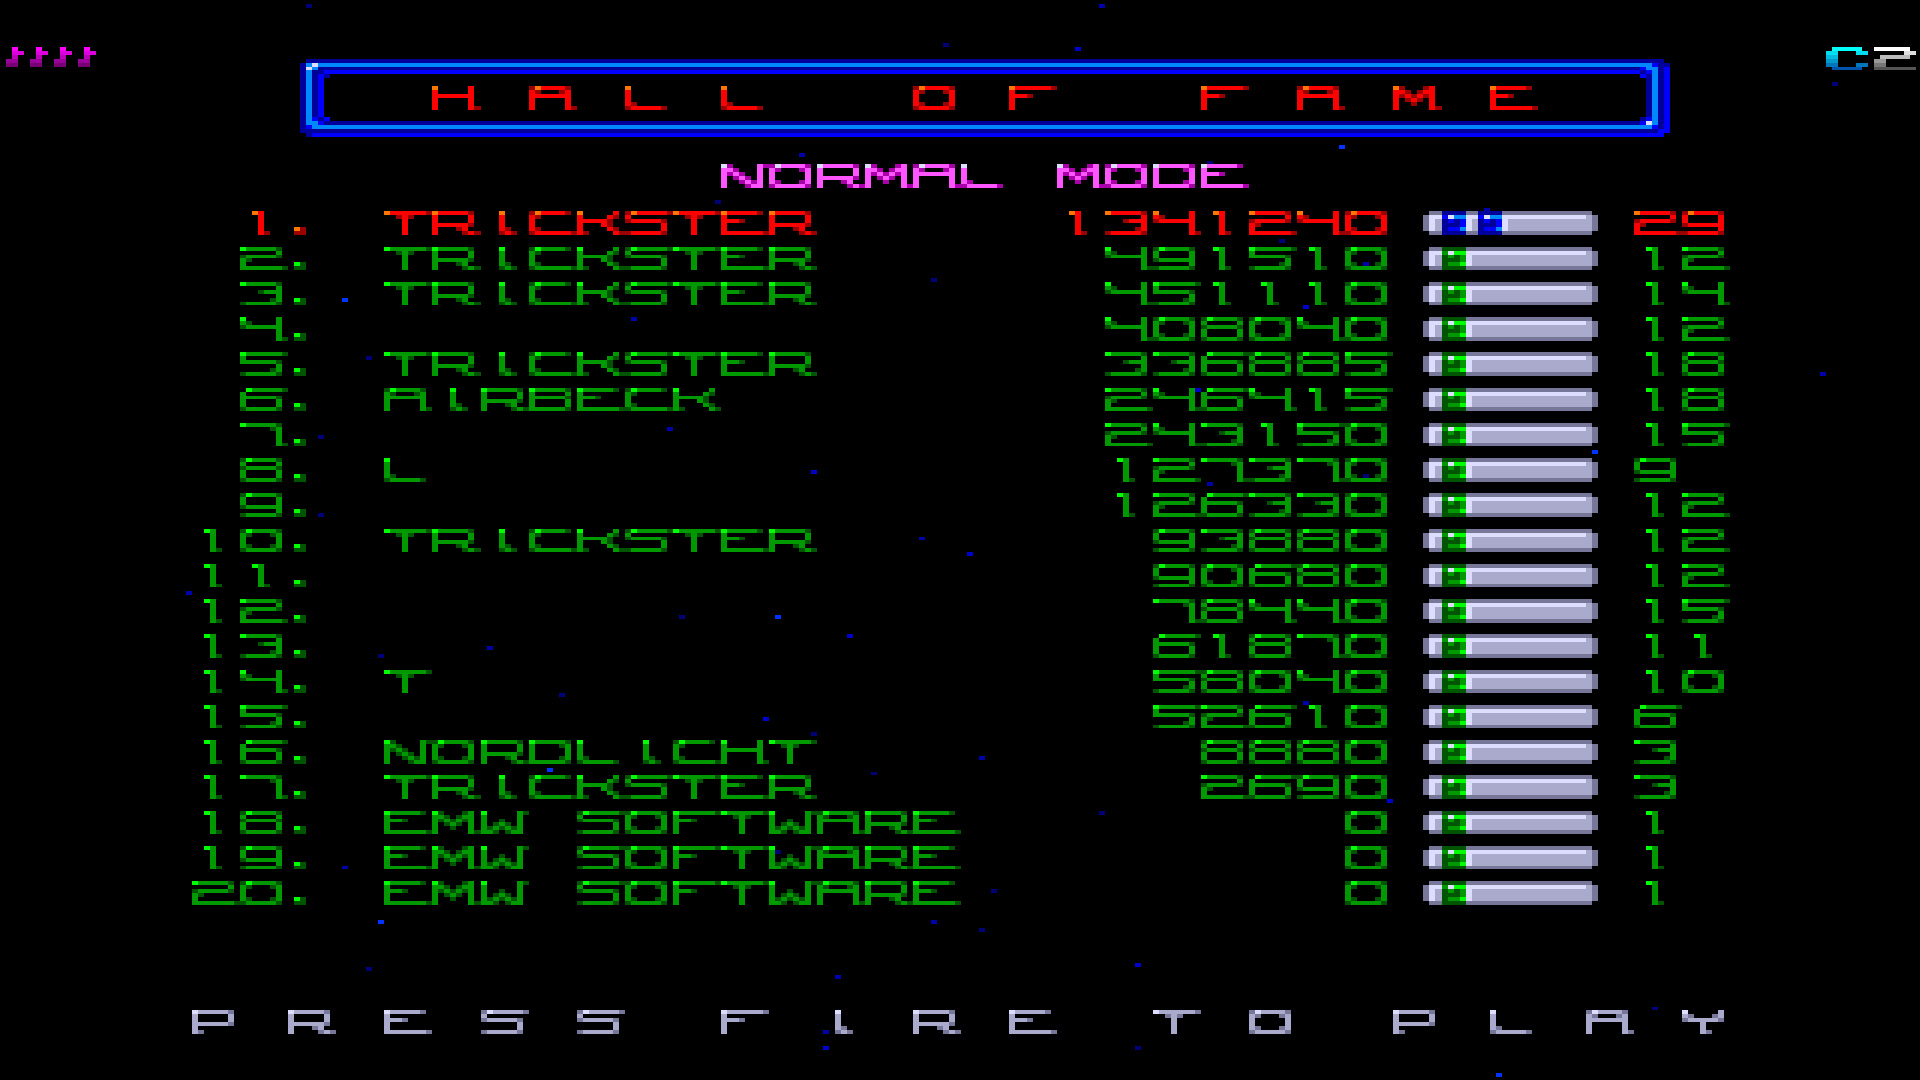 TheTrickster: Deluxe Galaga: Normal (Amiga Emulated) 1,341,240 points on 2015-08-02 07:04:33